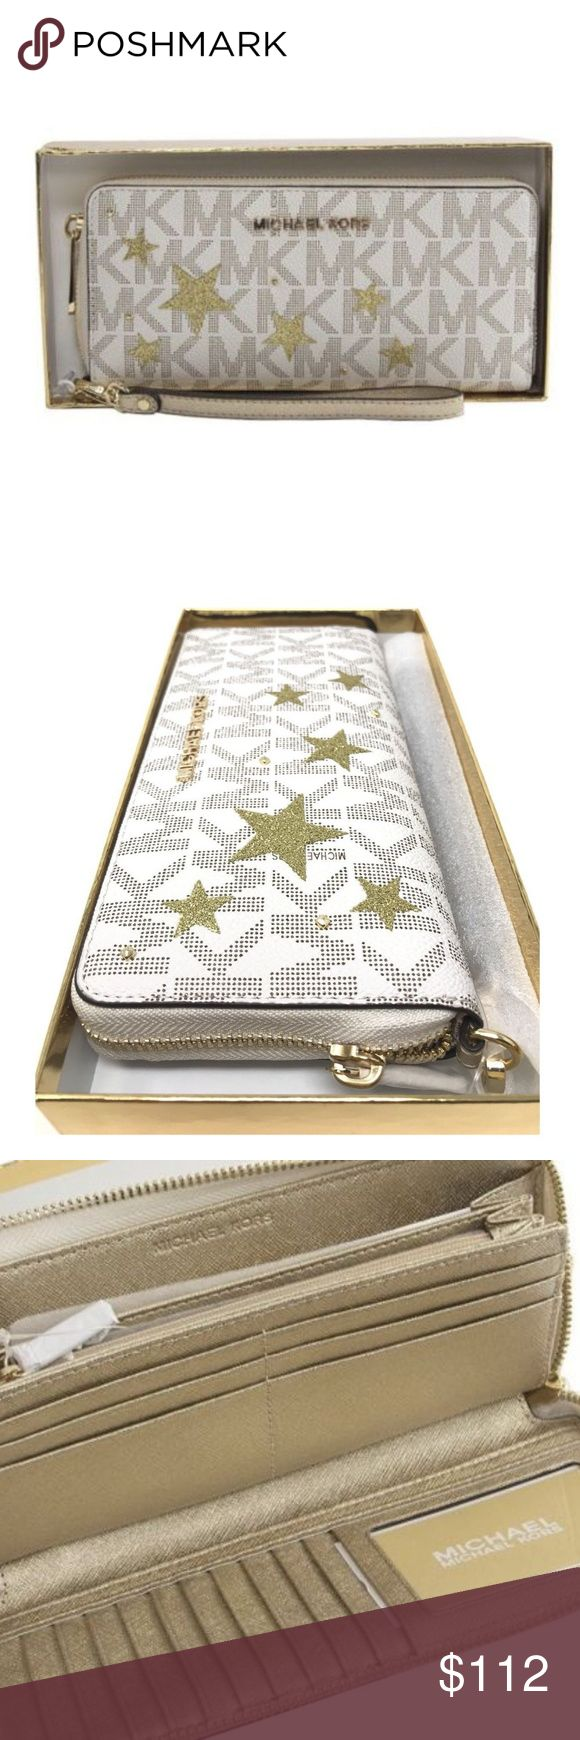 Michael Kors Illustrations Gold Star Travel Wallet Michael Kors Illustrations Gold Stars Continental Travel Wallet Vanilla Gold  Item# 273010475058  100% Authentic Michael Kors!  Buy with confidence!  • MSRP: $198.00  • Style: 35H7XIFE3M  Features:  • Brand: Michael Kors  • Continental Illustrations Zip Around Travel Wallet  • Gold Glitter Stars, Vanilla Signature  • Leather and PVC signature  • Gold Nameplate  • Detachable wrist strap  • Measures 8.5 wide by 4 inches height  • Zip around…